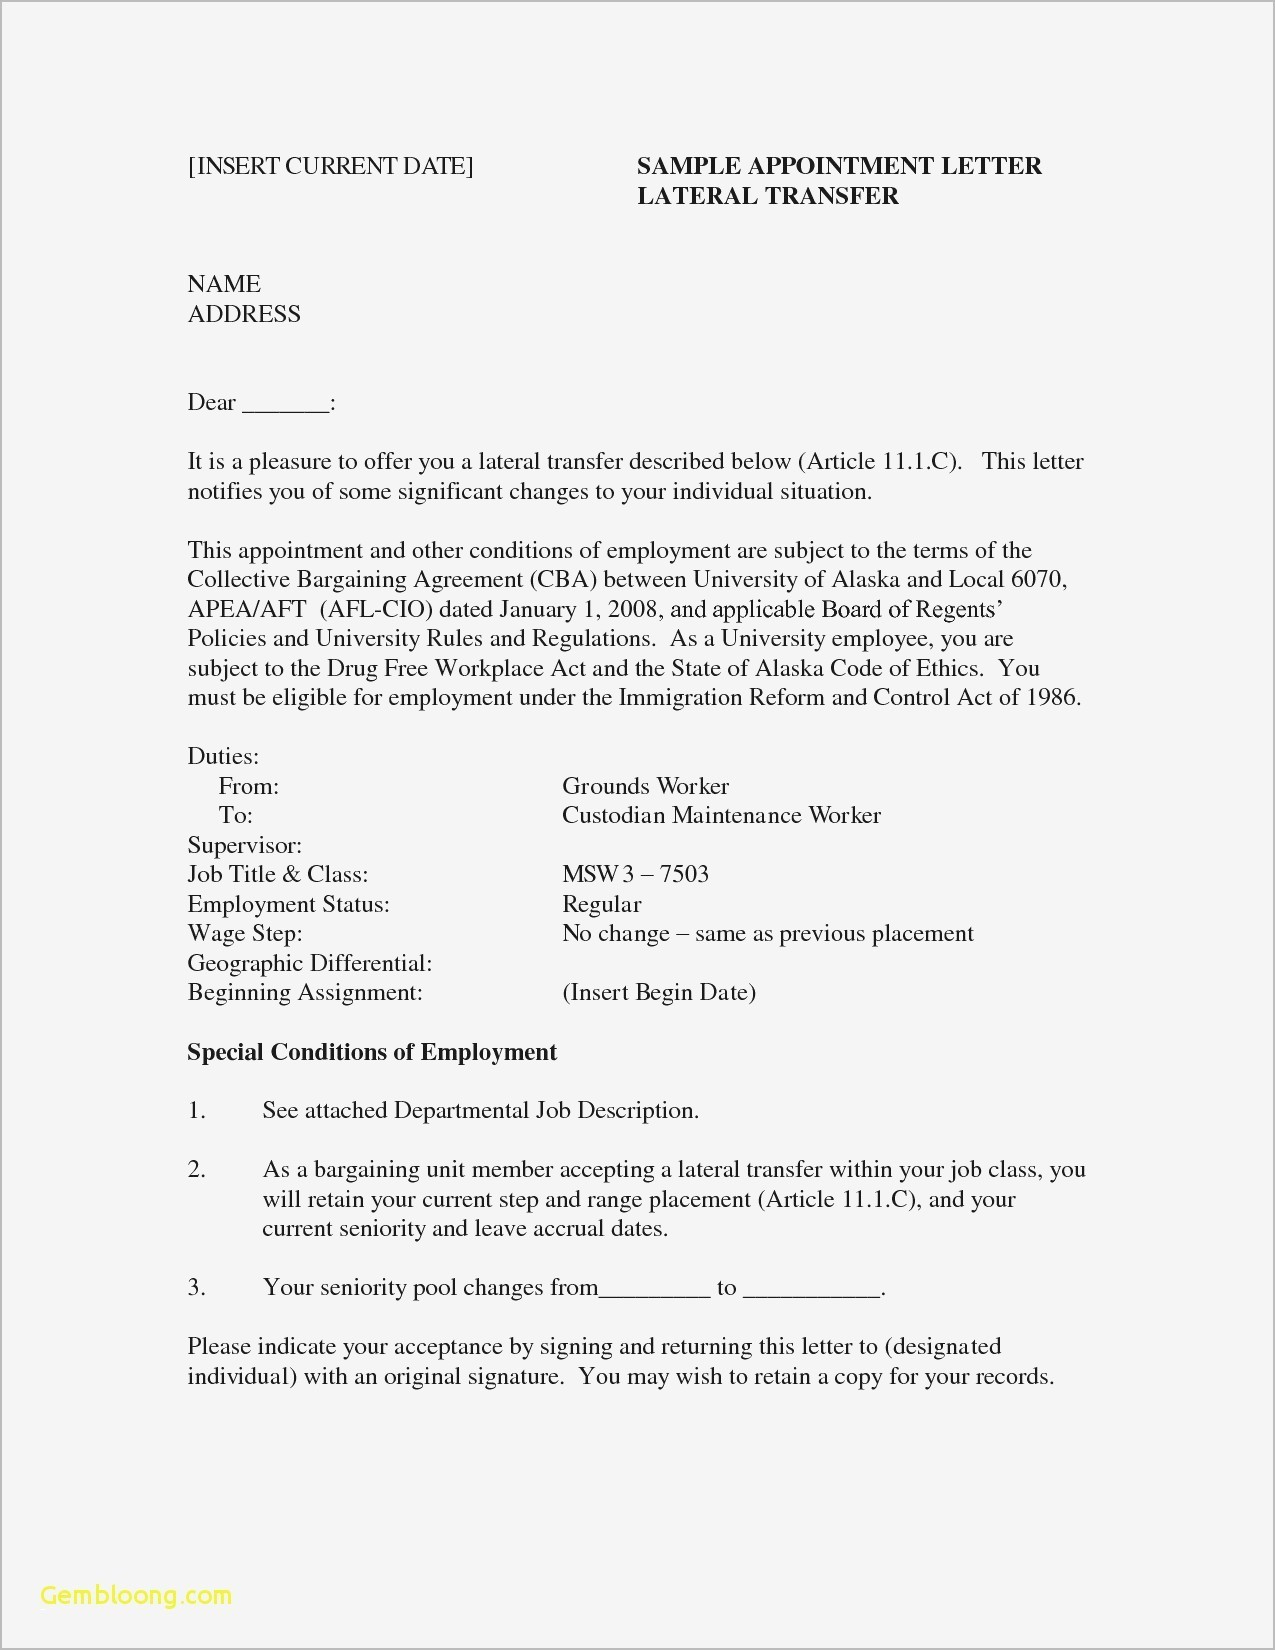 Resume Services Nj - A Great Resume Best Resume for It Job Best Best Examples Resumes